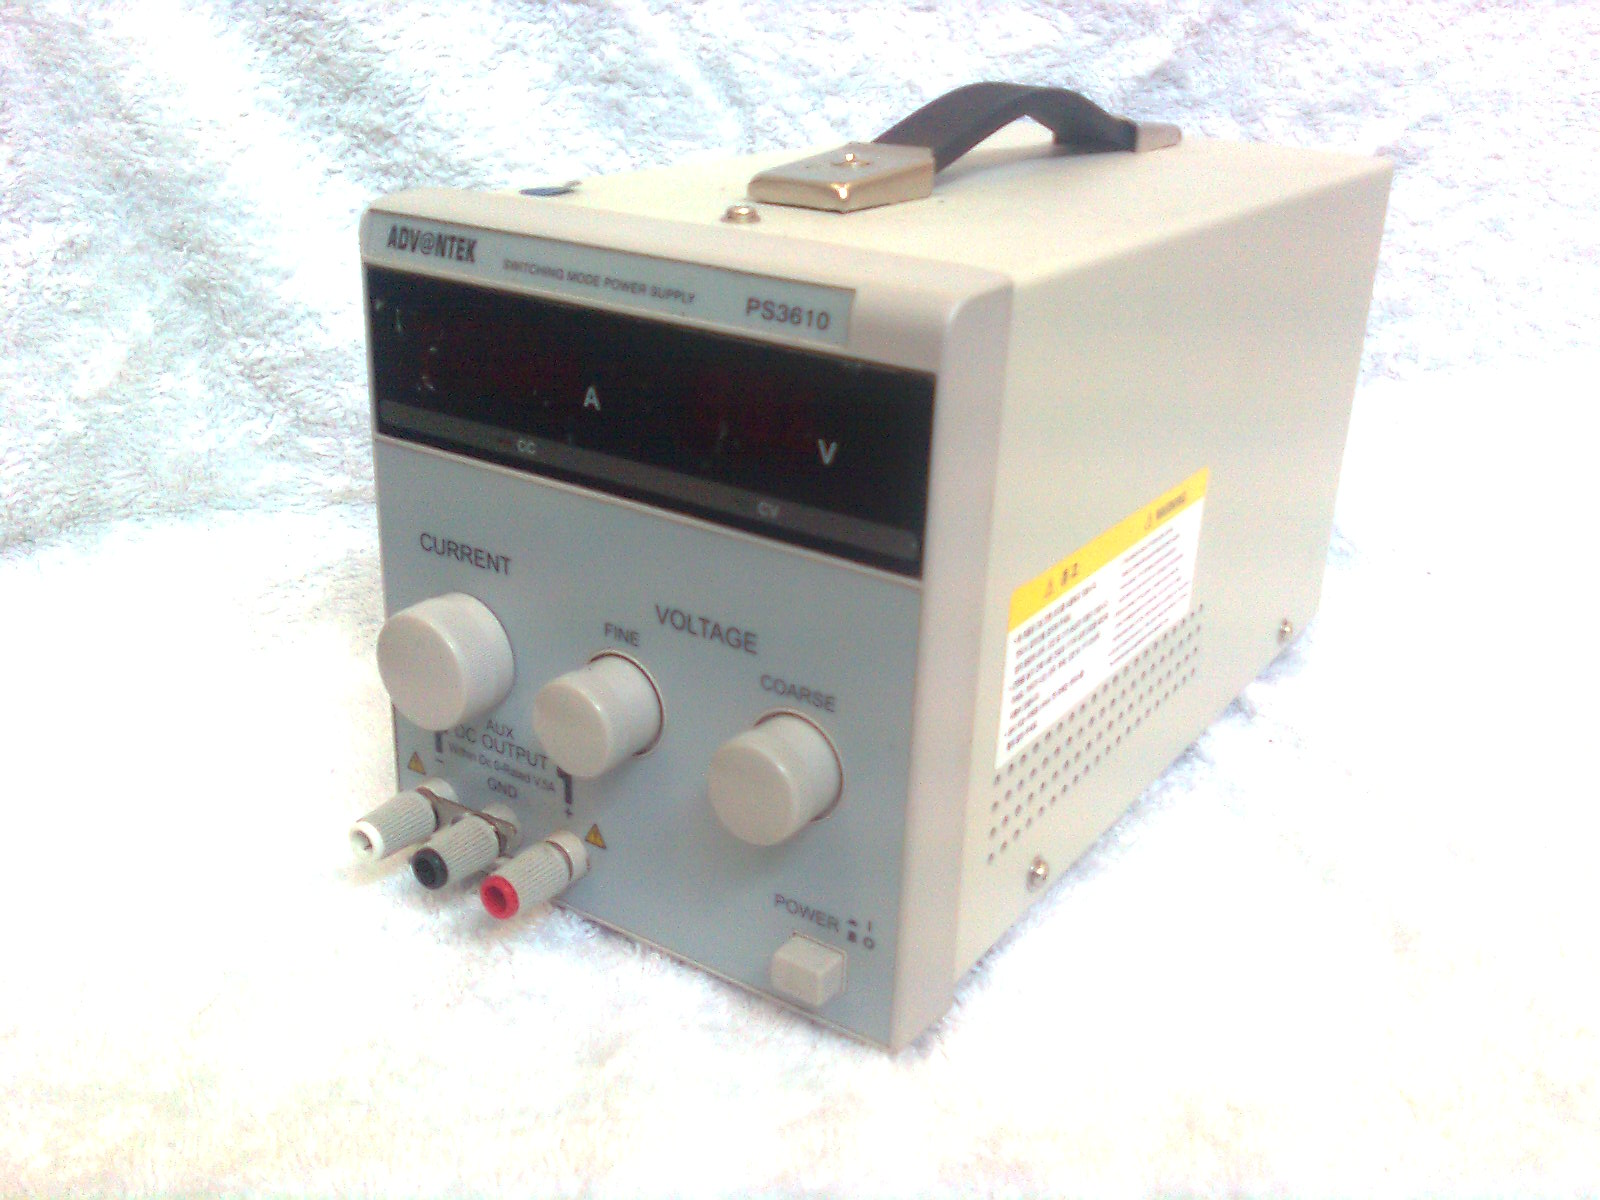 2415-0-T001 : Power Supply - Regulated, 0 > 24Vdc, 15A Image